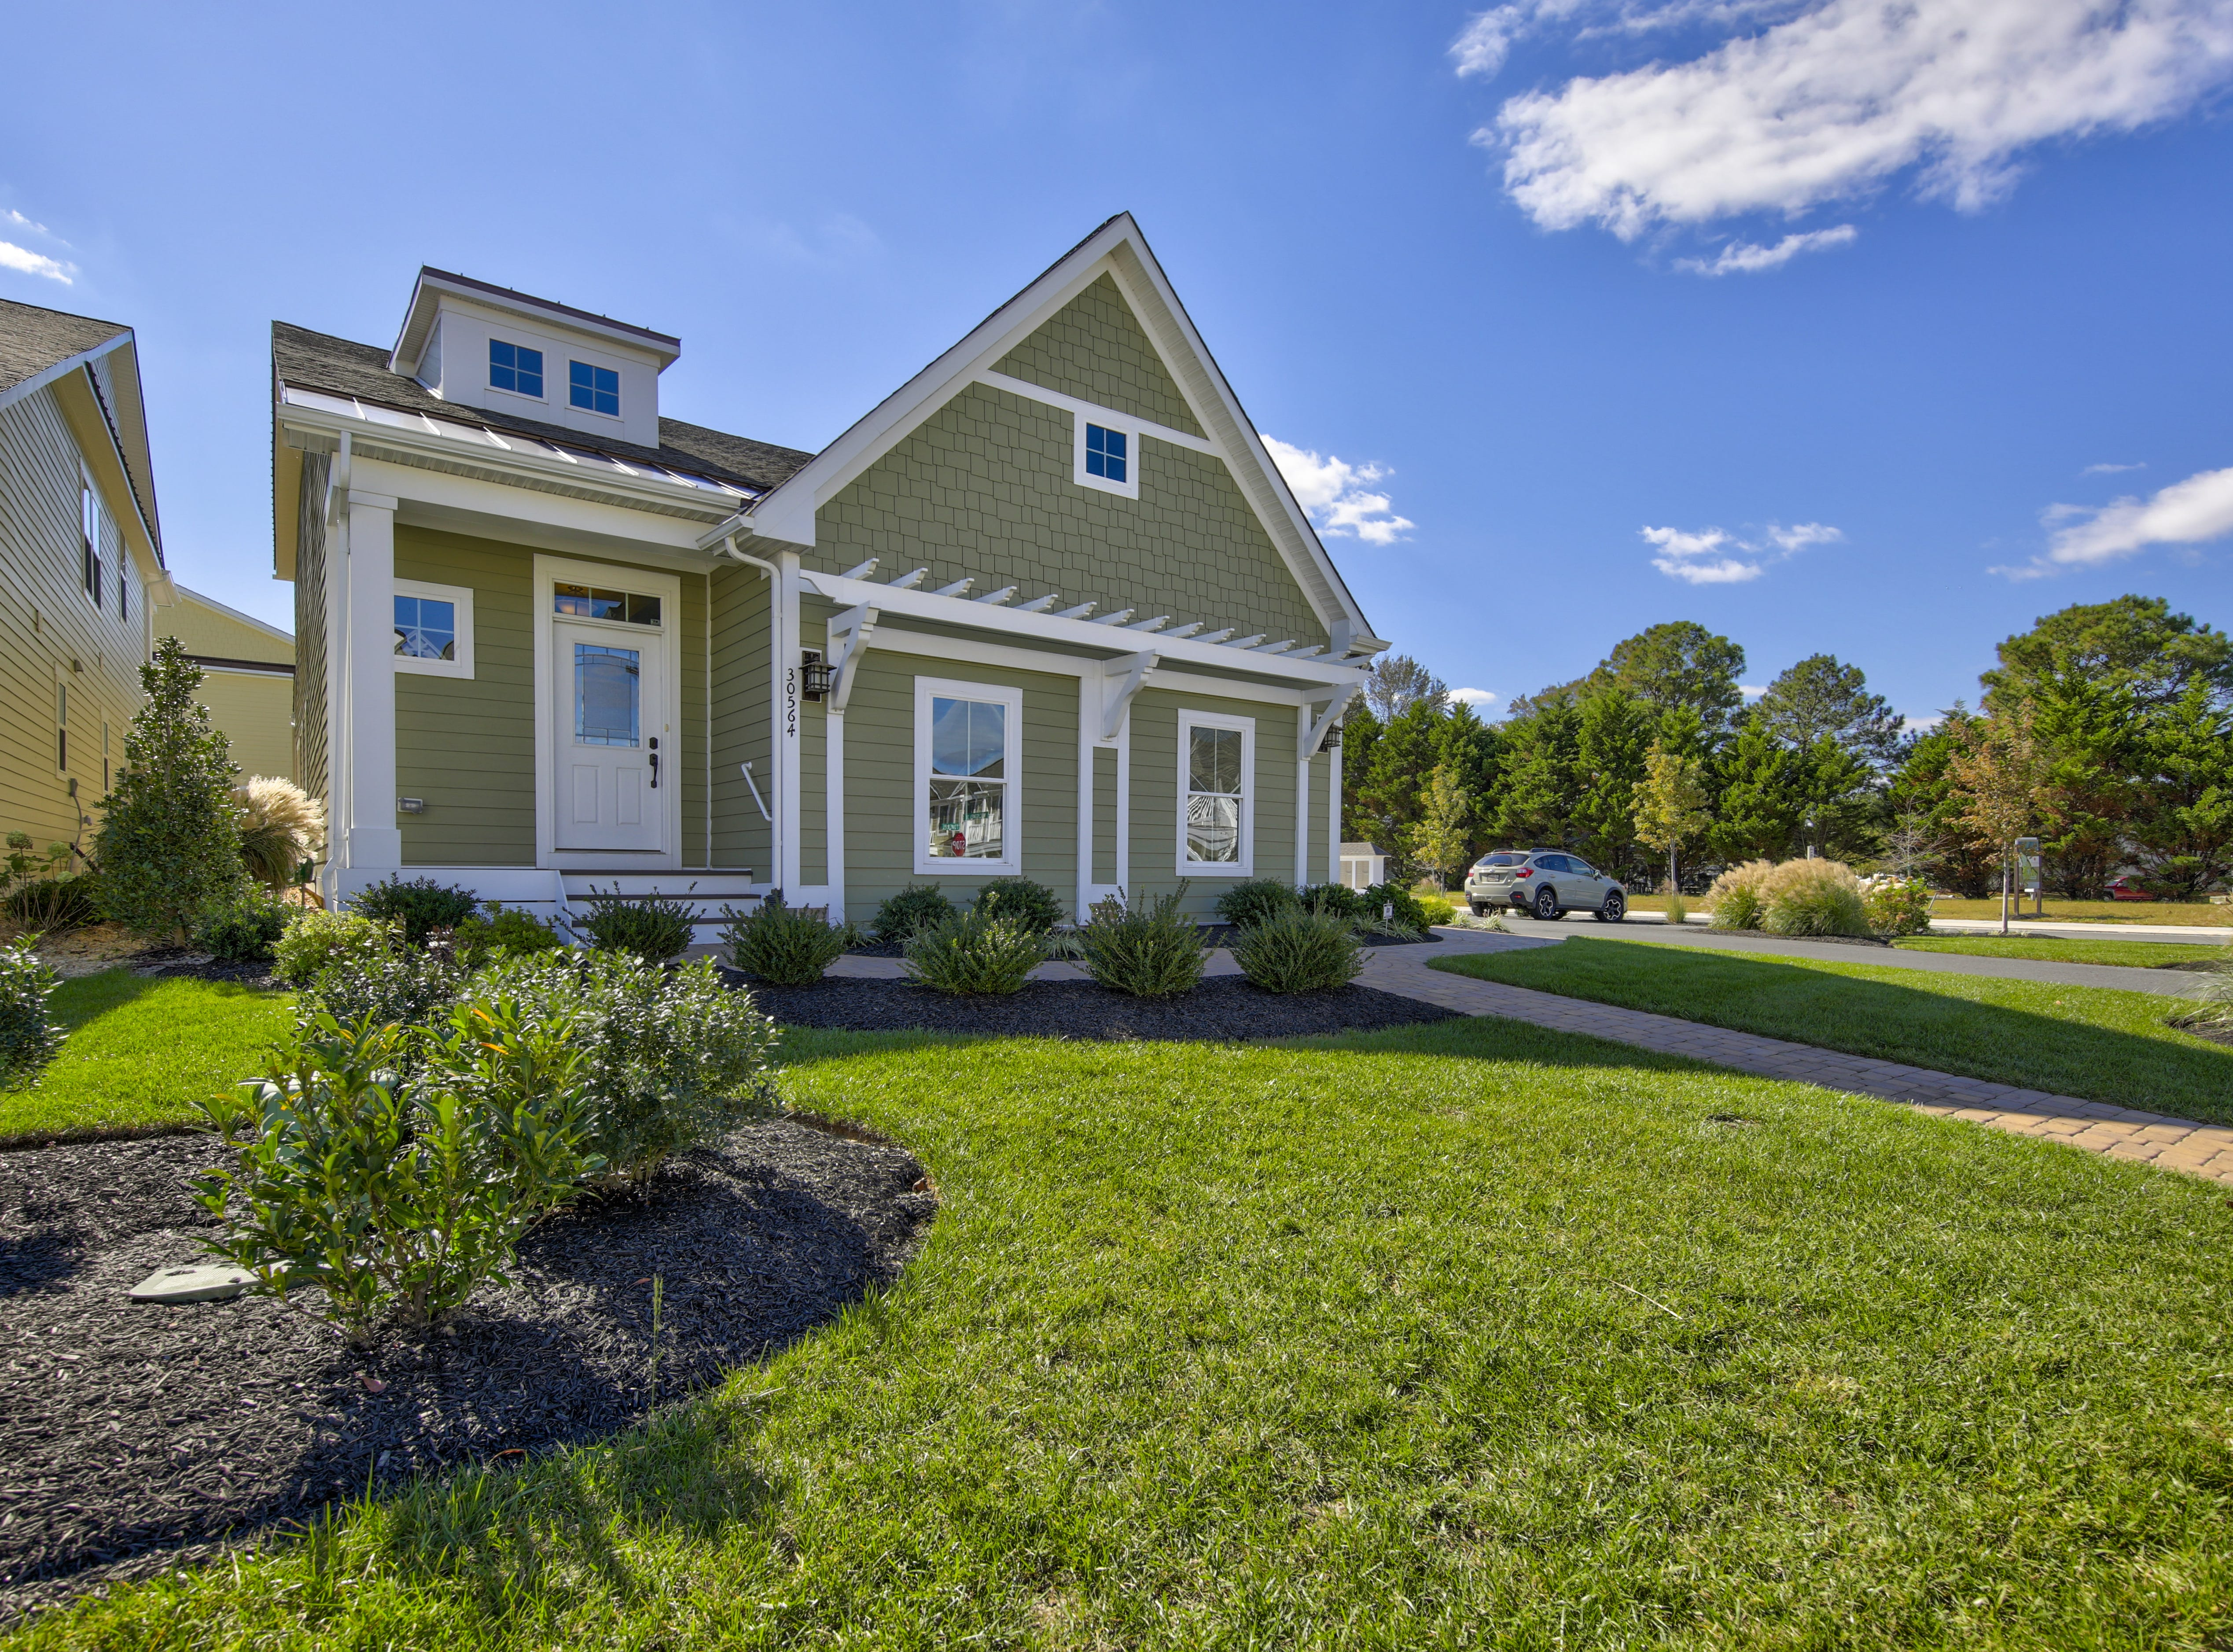 The model home at The Overlook in Selbyville has a low-maintenance exterior.